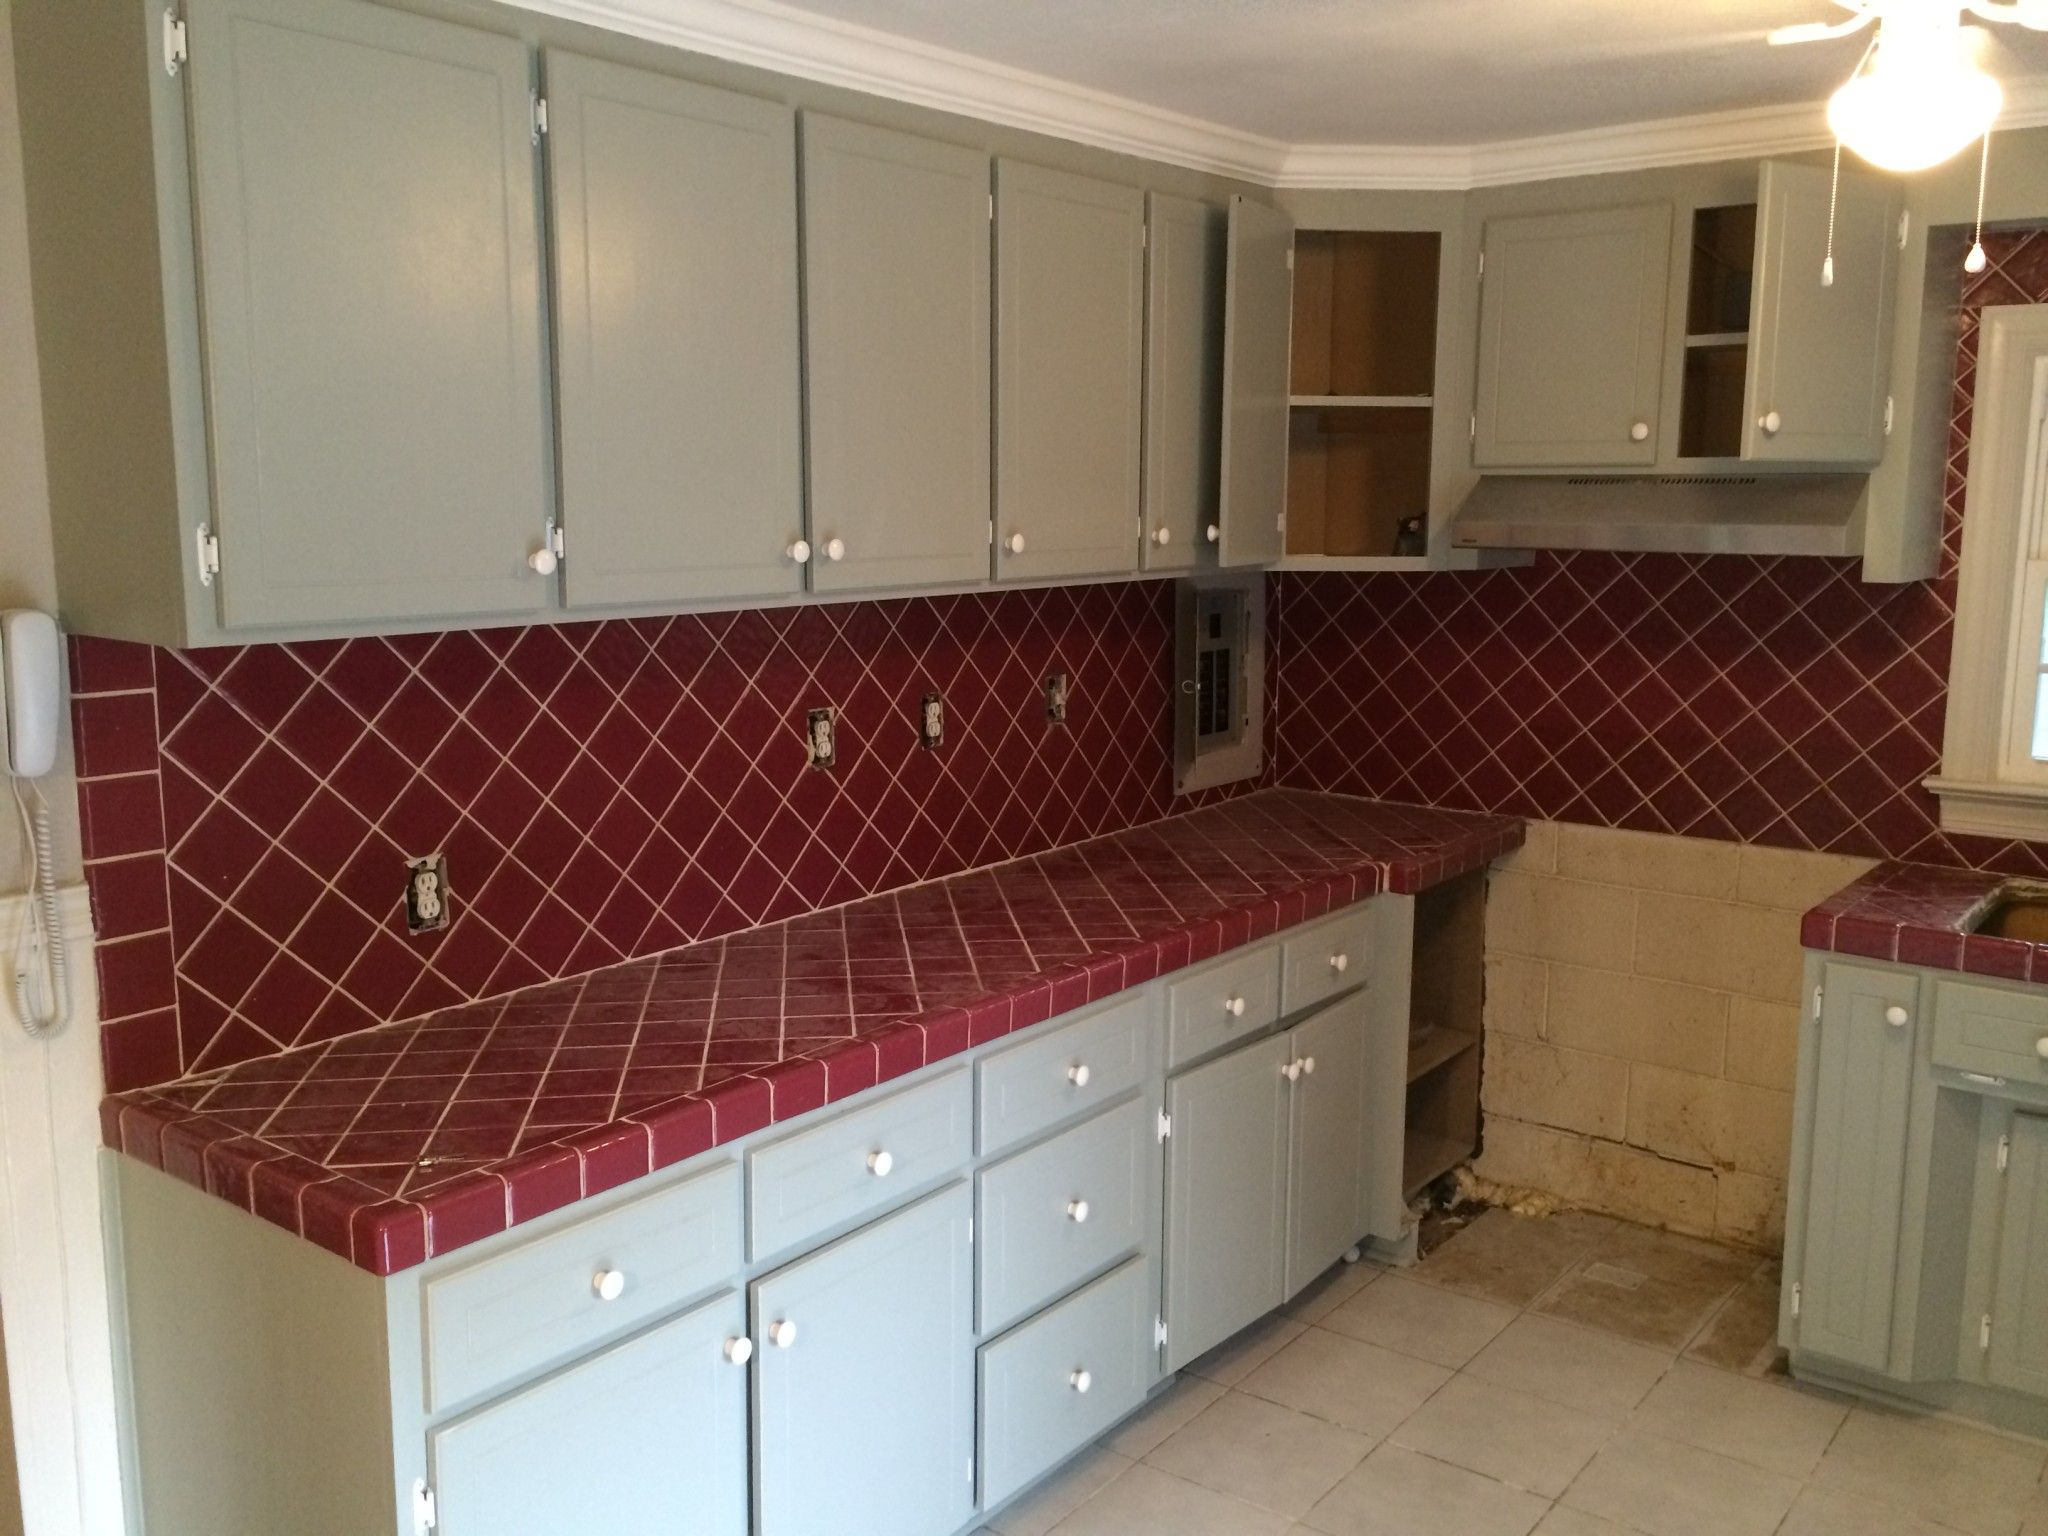 Kitchen Cabinet Repainting Refinishing Experts In Raleigh Specialized Refinishing Co Refinishing Cabinets Kitchen Cabinets Gorgeous Kitchens